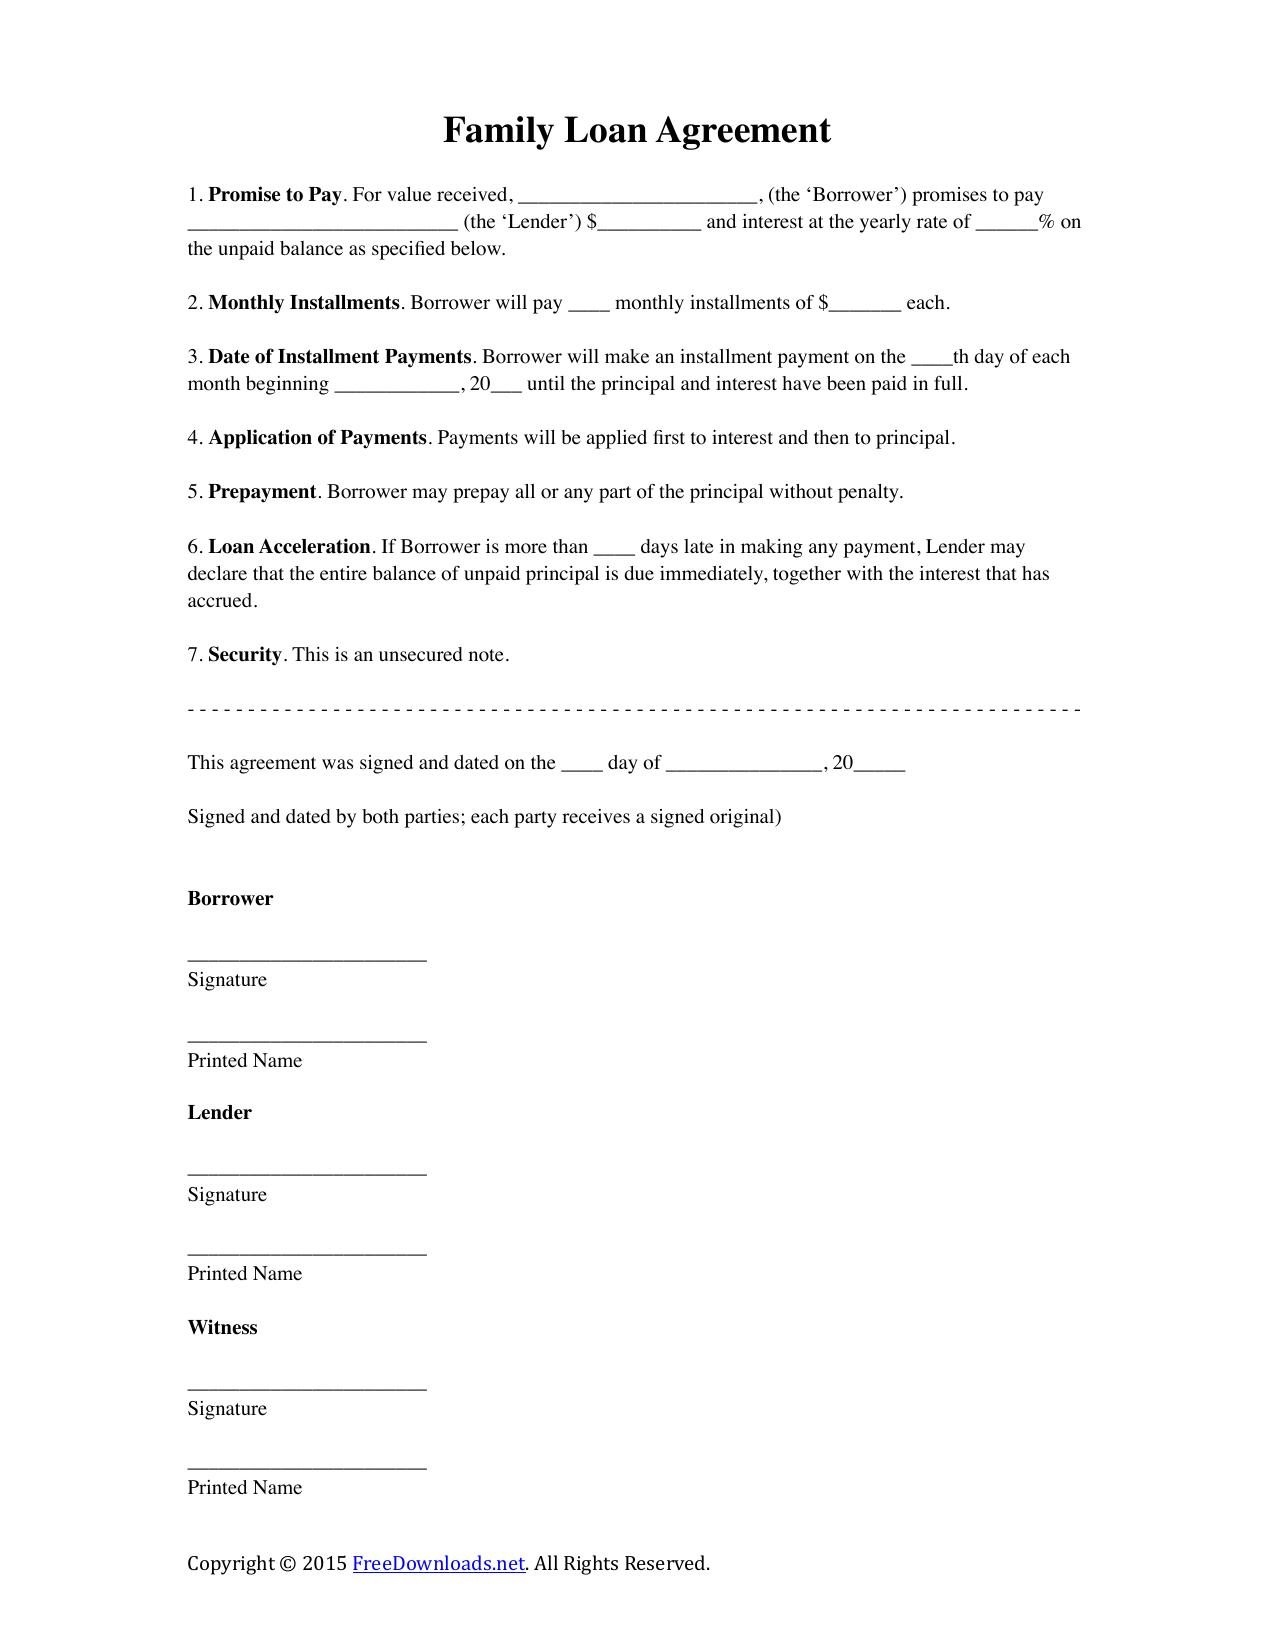 Family Loan Agreement Template Word